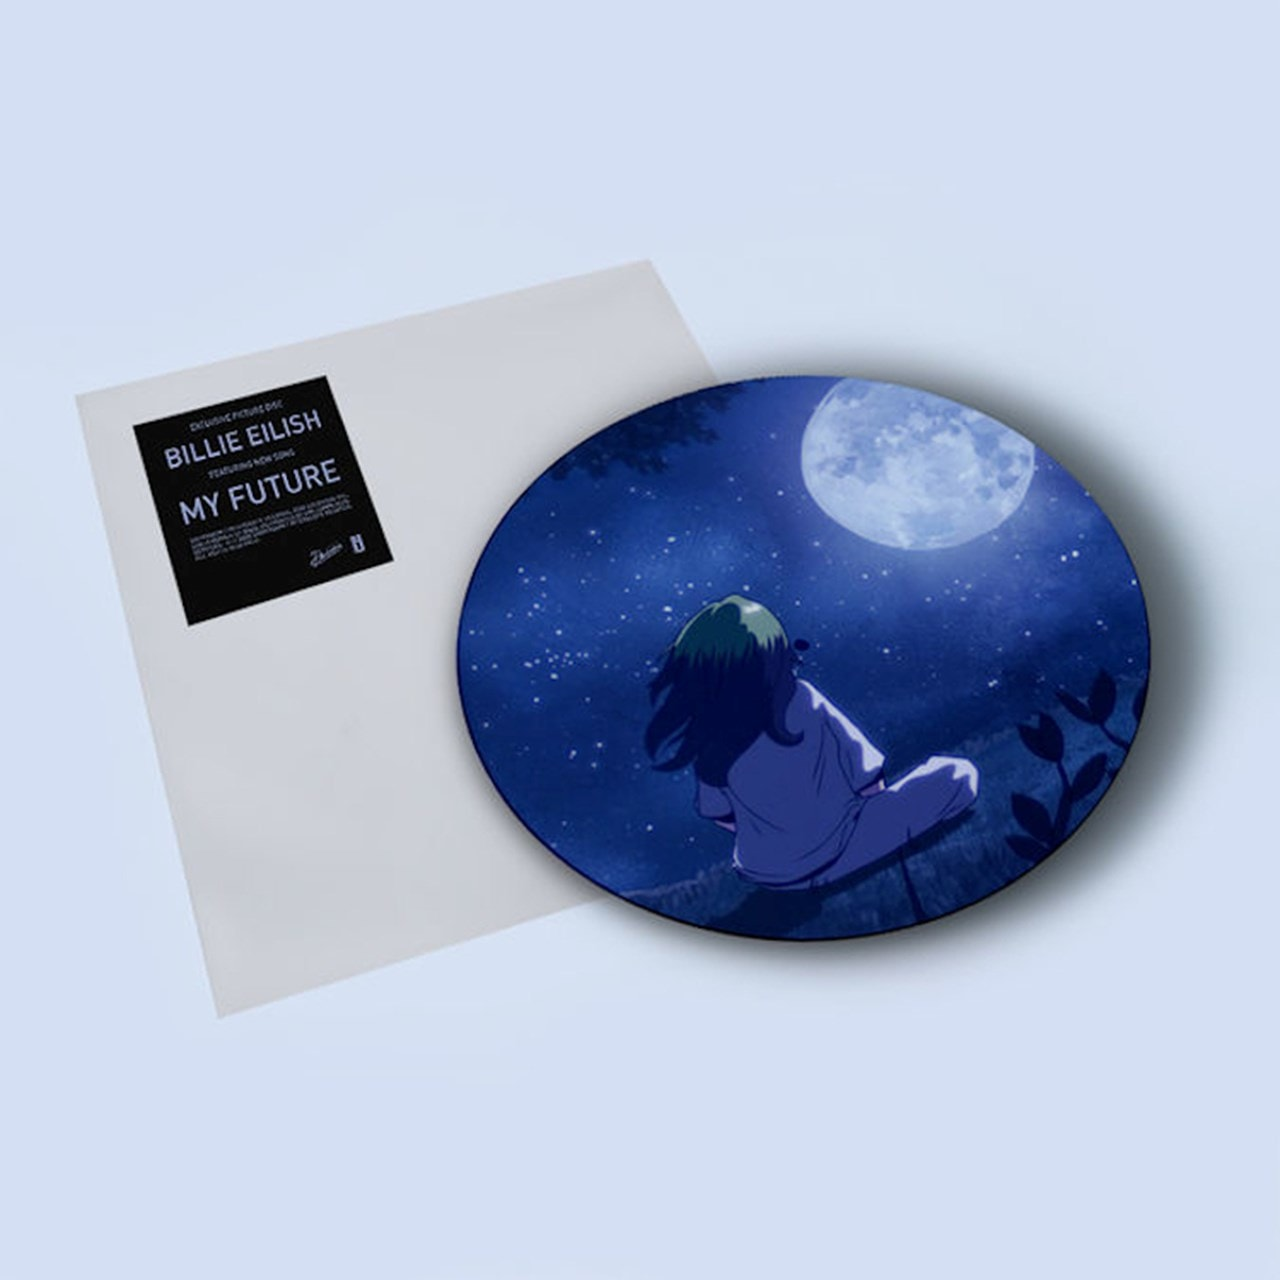 My Future - Limited Edition Picture Disc - 1